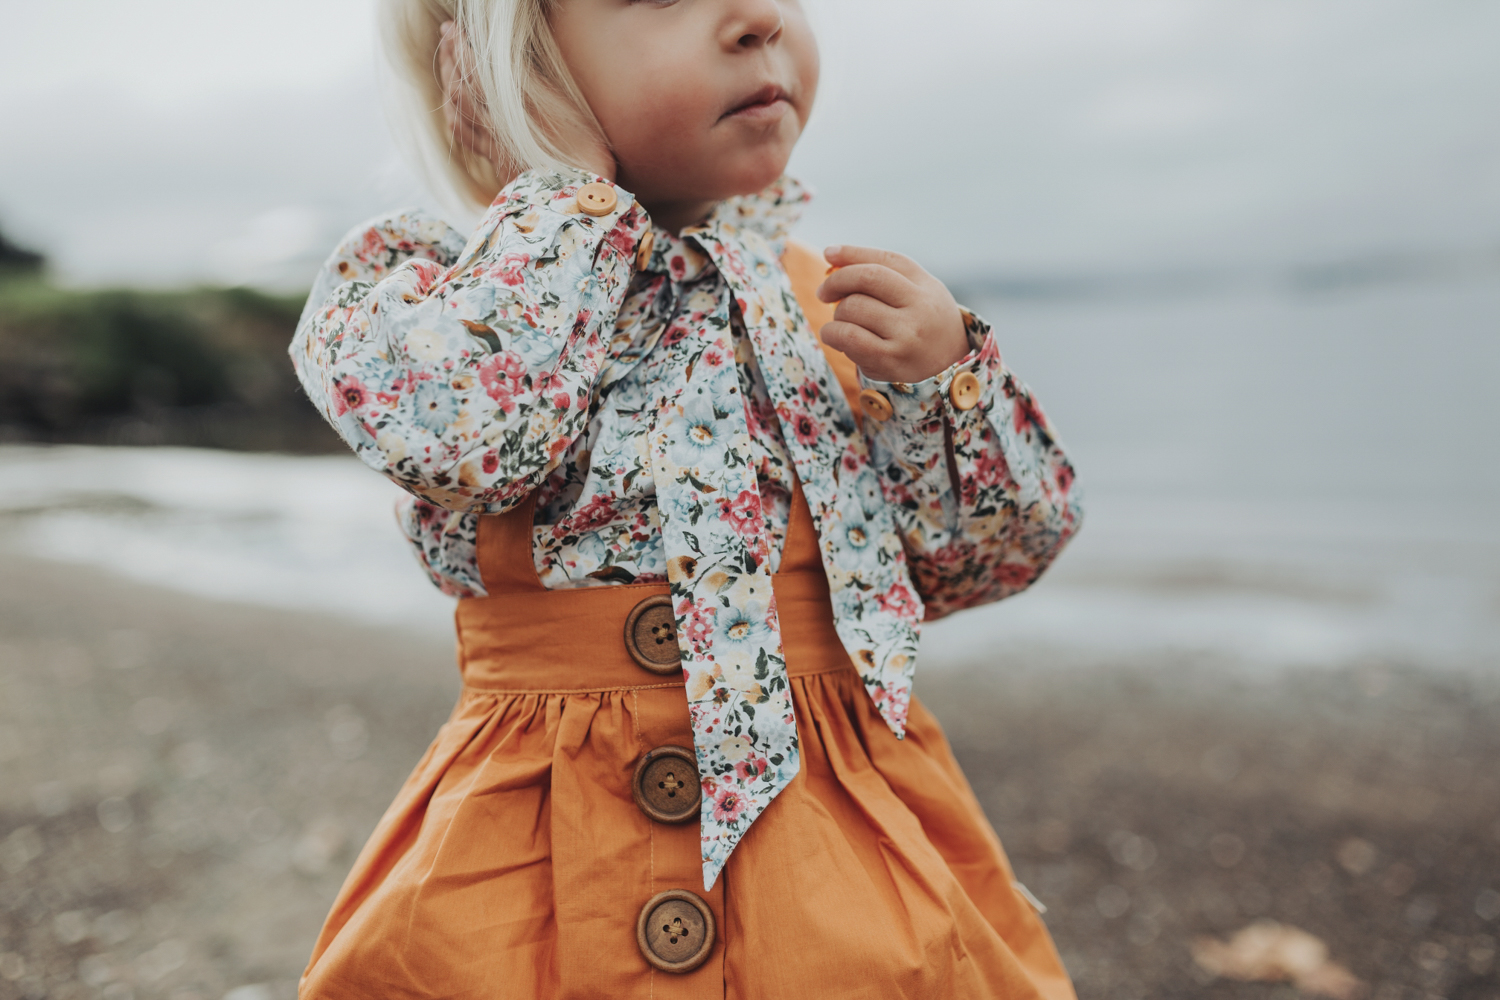 Young girl listens to shells in floral shirt during fashion phot